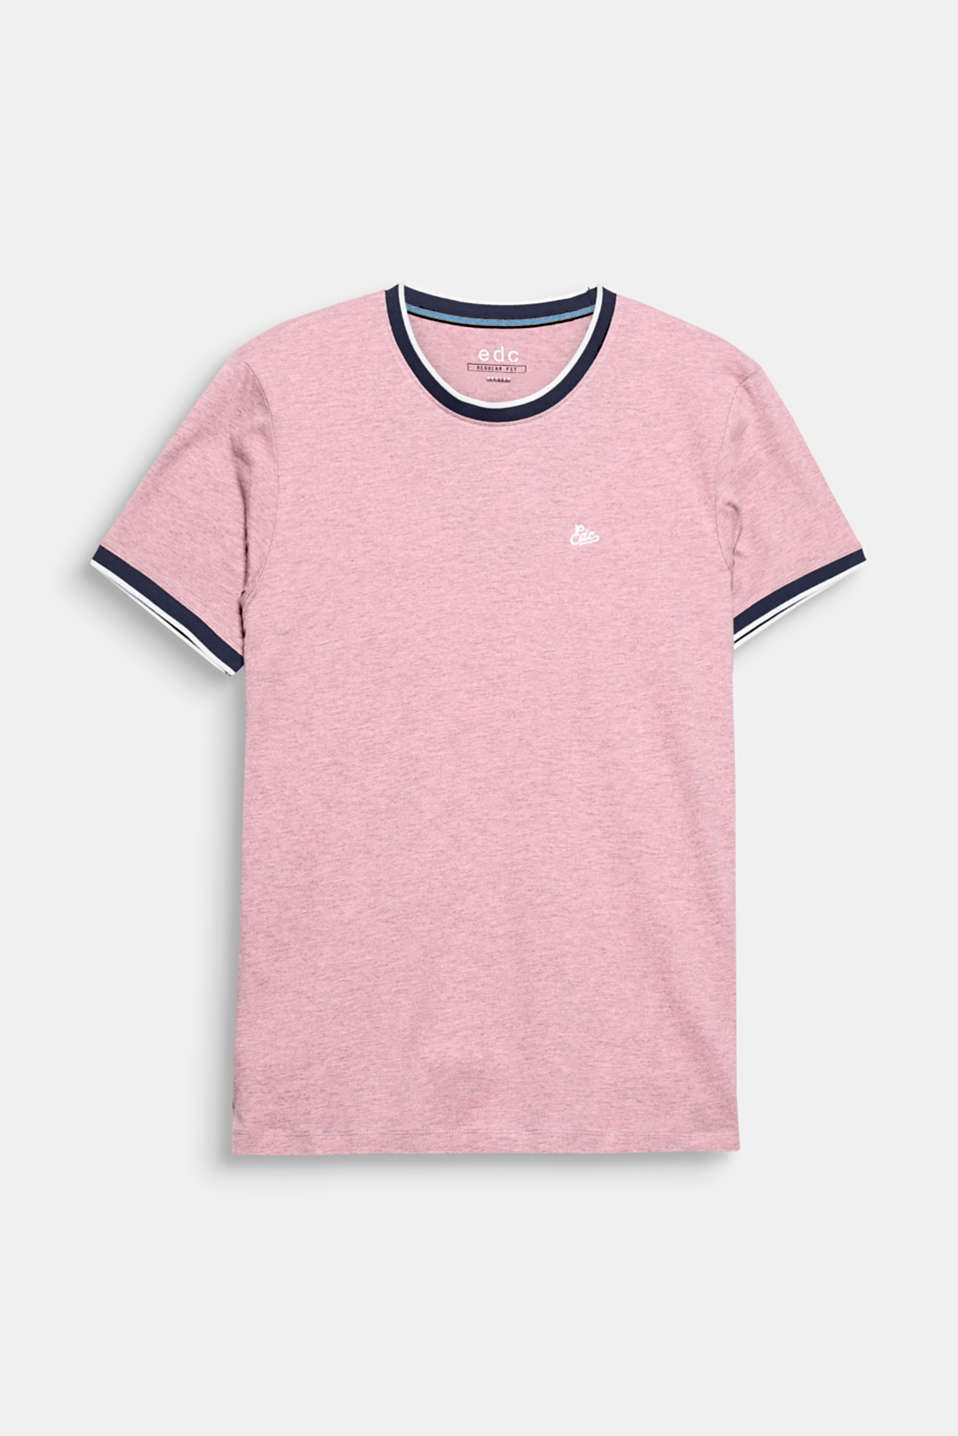 The contrasting colour ribbed borders give this cotton T-shirt a sporty look.